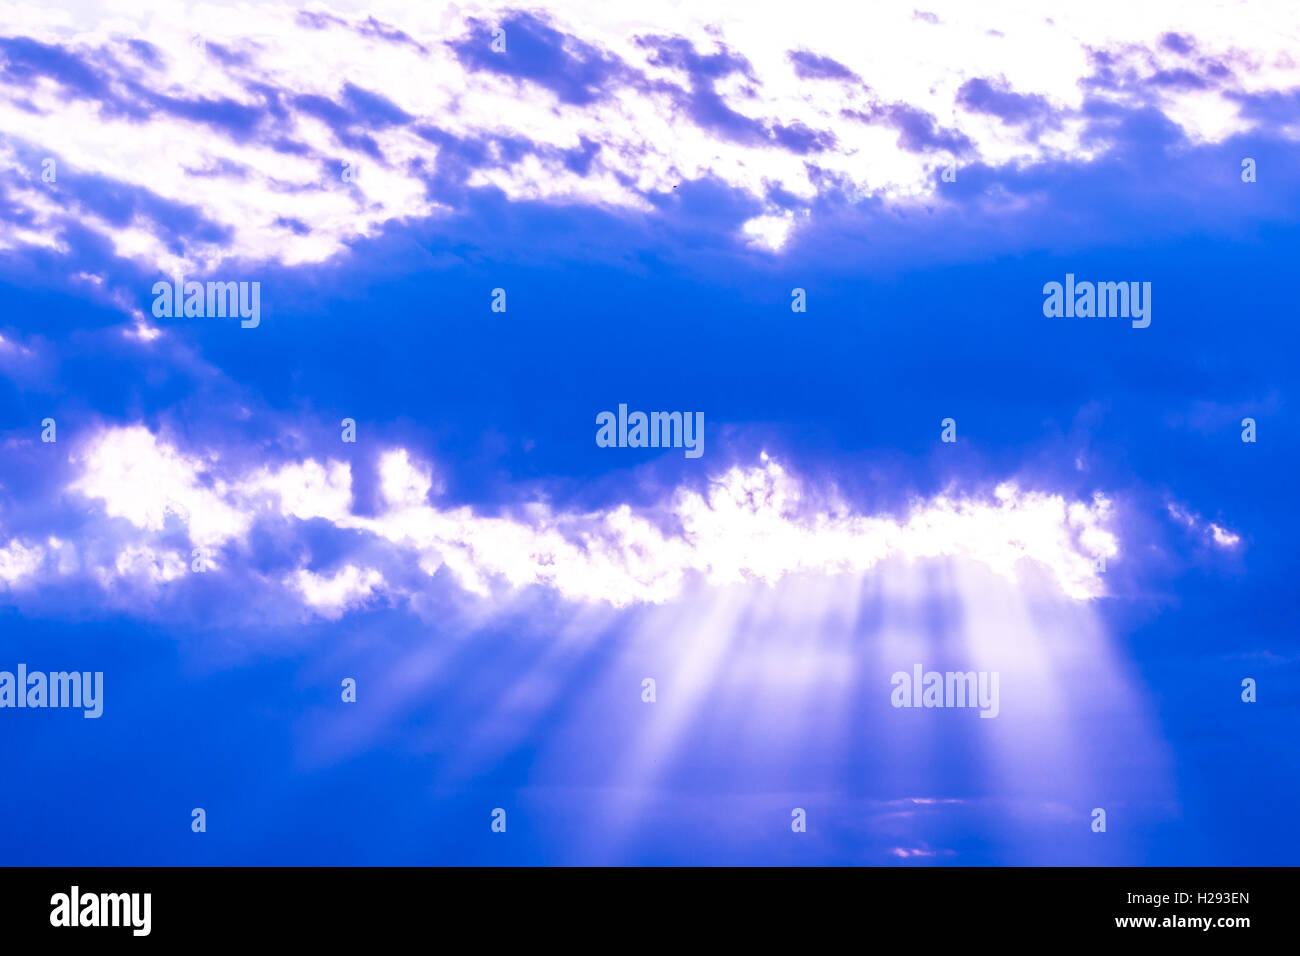 Sun beams of light shinning through the clouds. - Stock Image